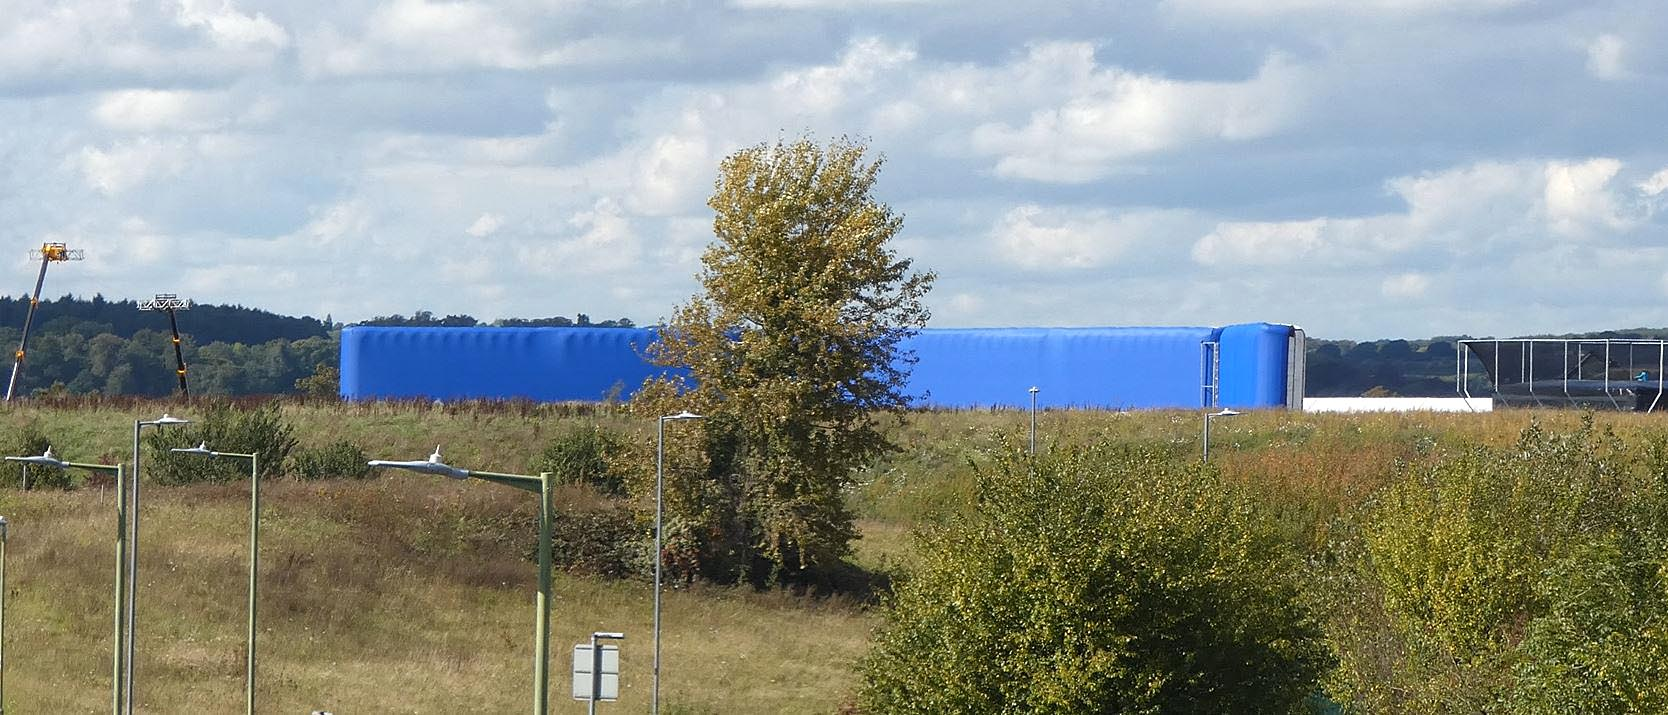 This could be the Largest inflatable Bluescreen seen on site.